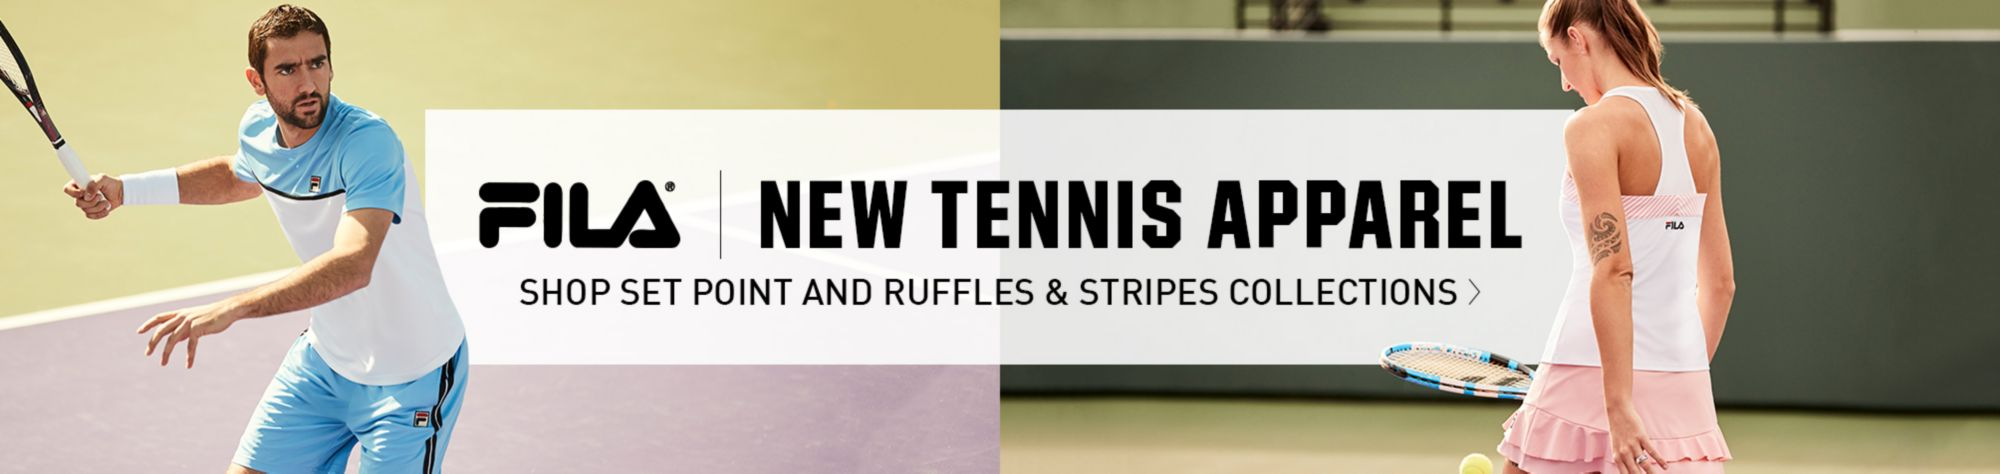 Shop New Fila Tennis Apparel Ruffles and Stripes Collections (Women's) & Set Point (Men's) Collections